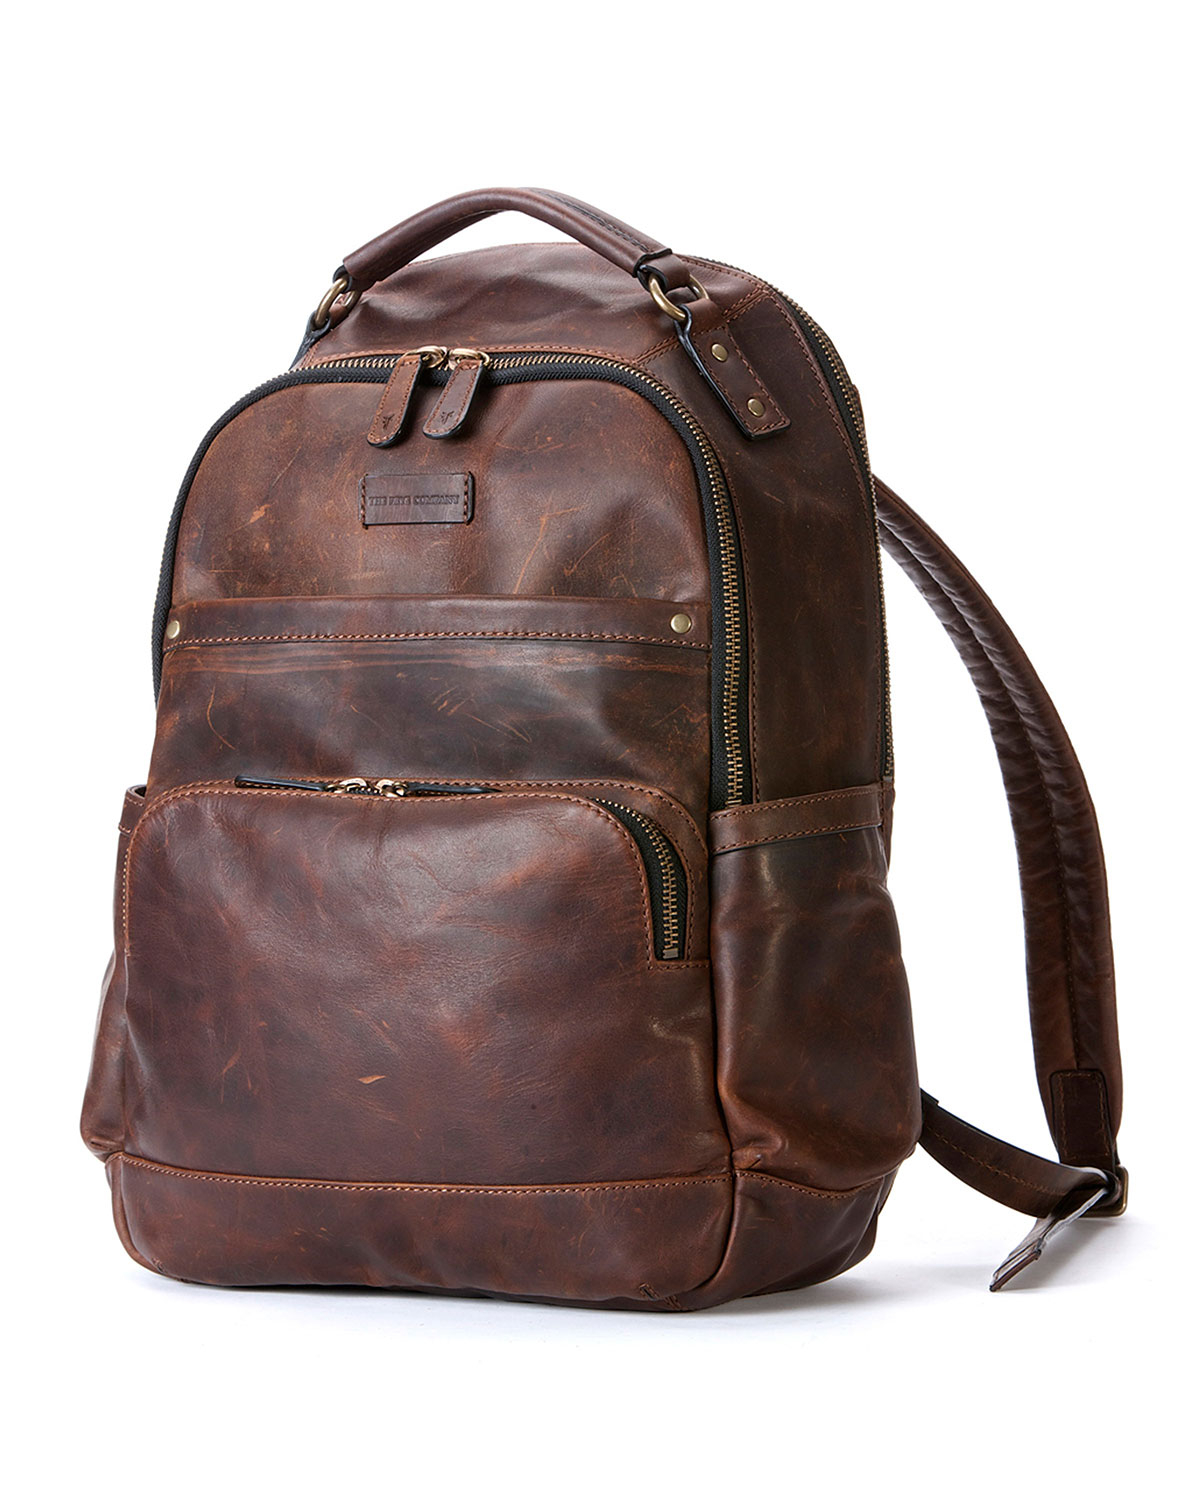 Leather Brown Backpack 1bRNtM0U